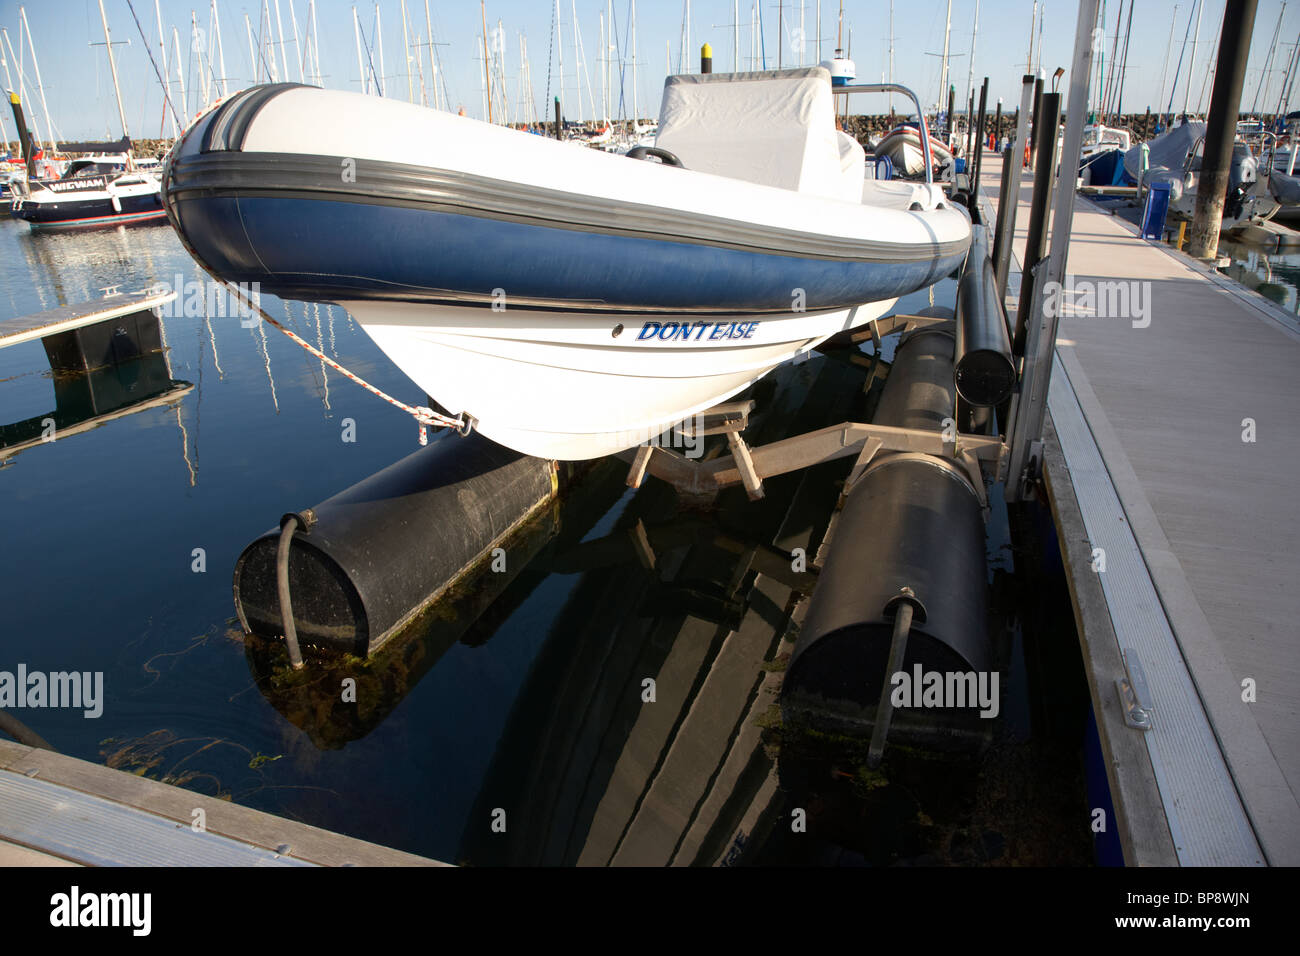 Inflatable Rib Boat On Hydraulic Boat Lift Next To A